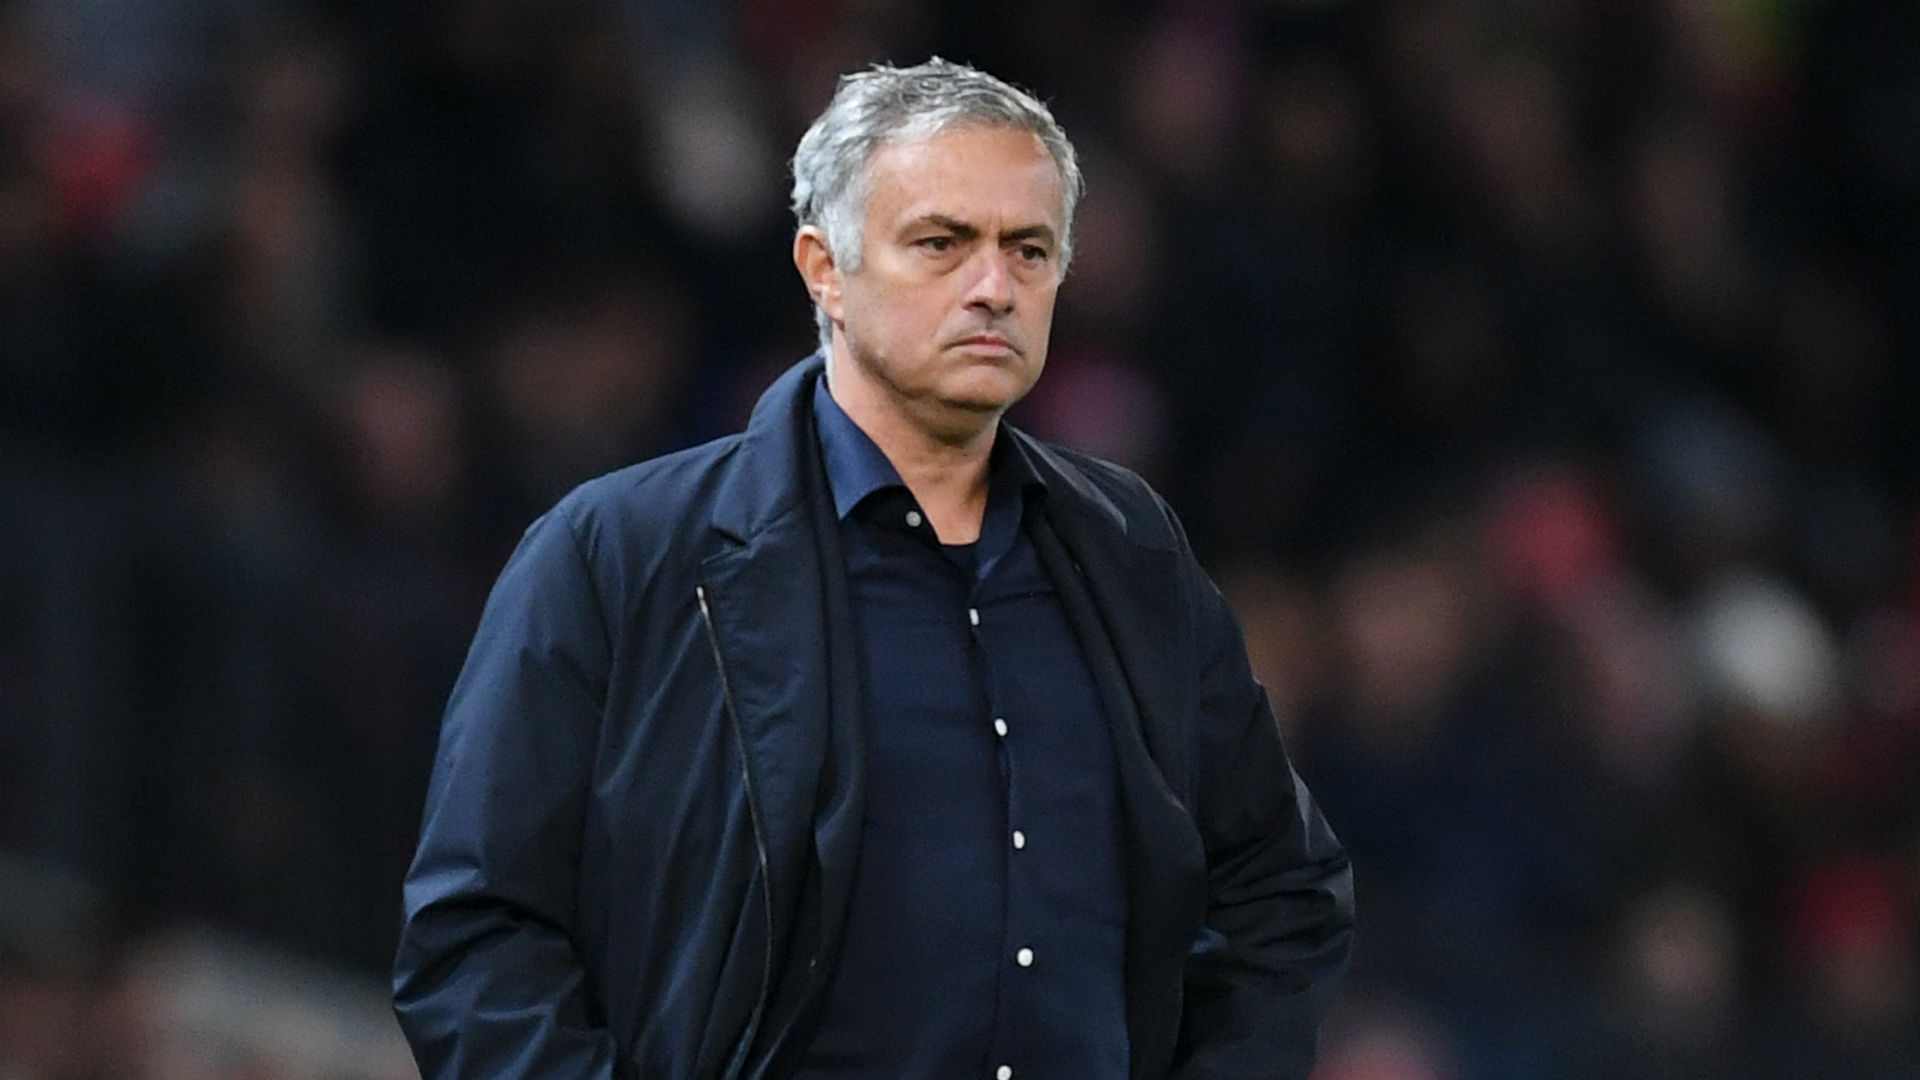 EPL: Ryan Giggs identifies Manchester United's problem, speaks on 'sack' of Mourinho